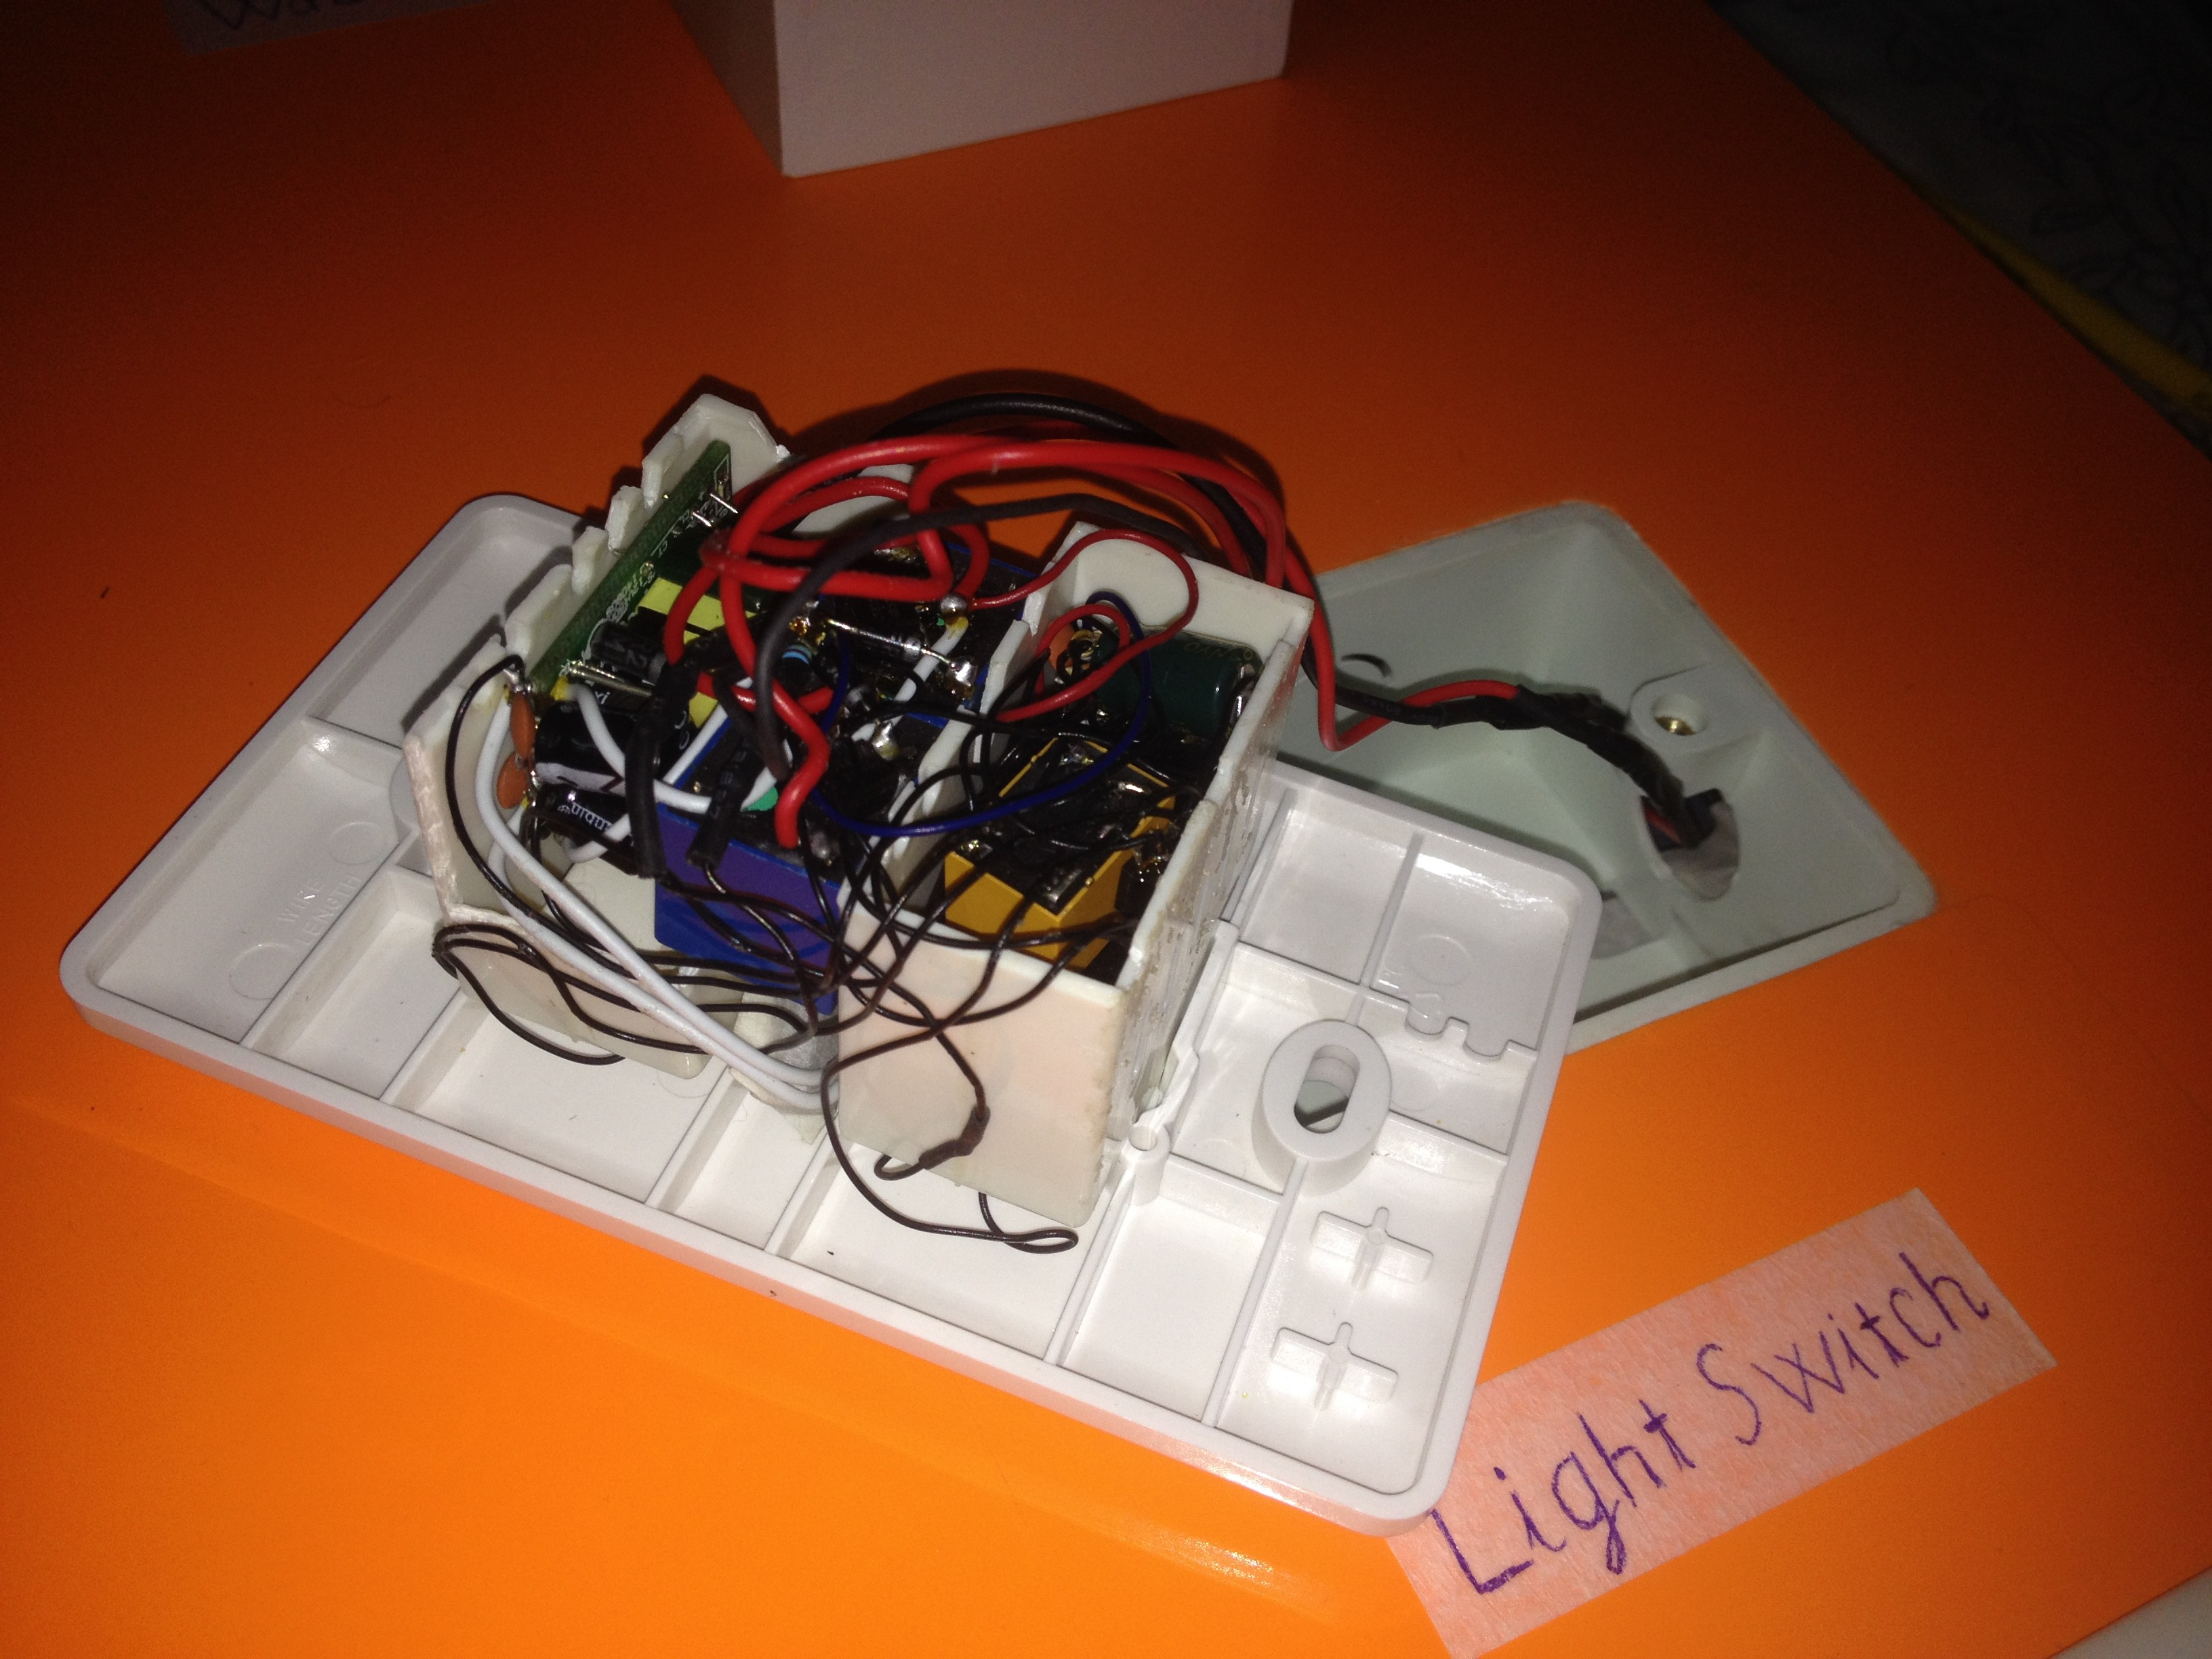 Smart Home With Blynk Relay Shield For Arduino V2 1 Dfrobot 5v10a X 2 3v3a Has Error Handling Function Nrf24l01 When Is Having Problems Will Turn Off 3 Seconds